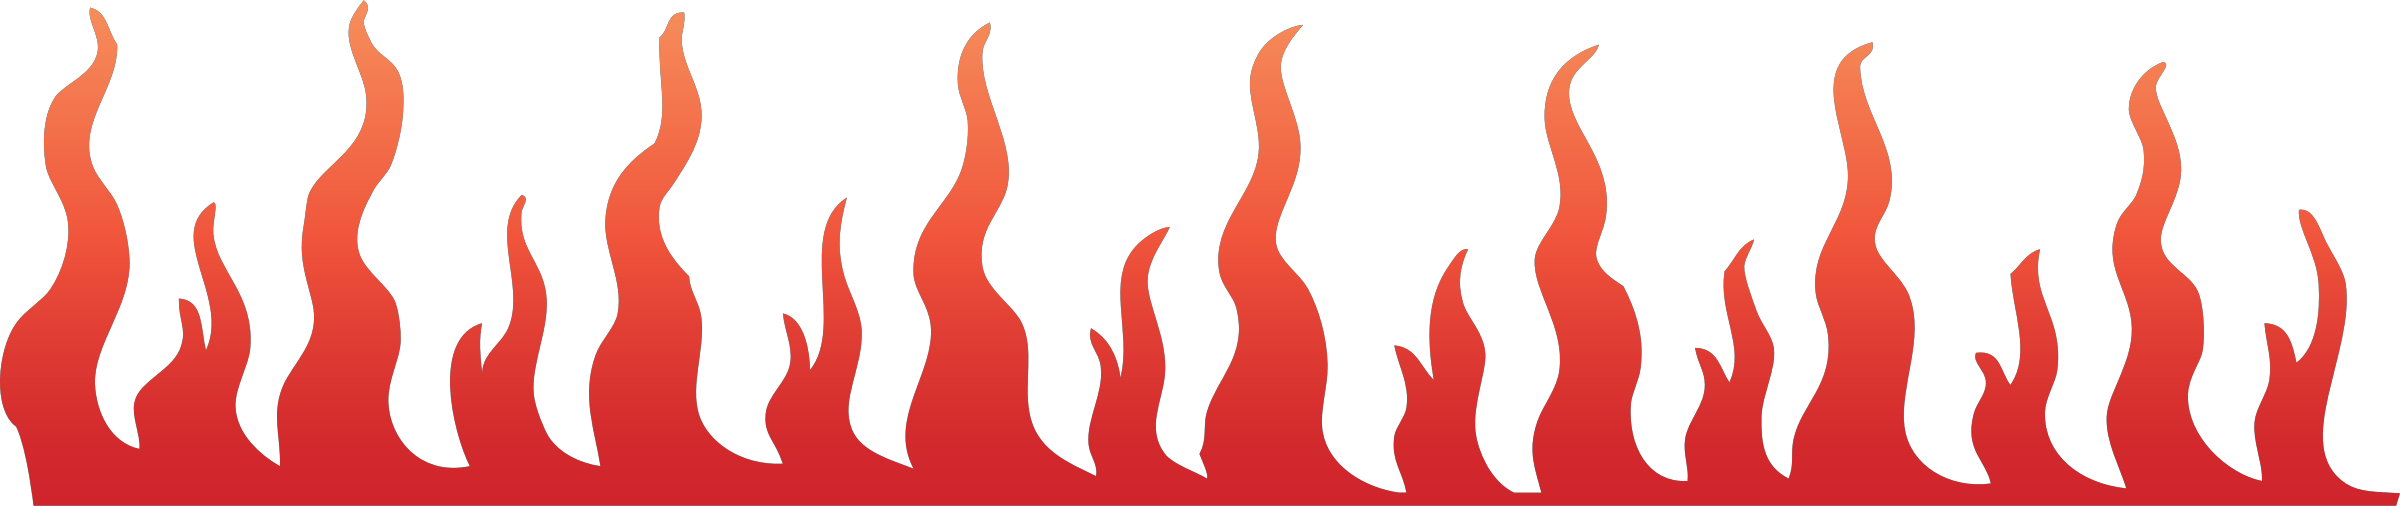 Line pencil and in. Clipart flames racing